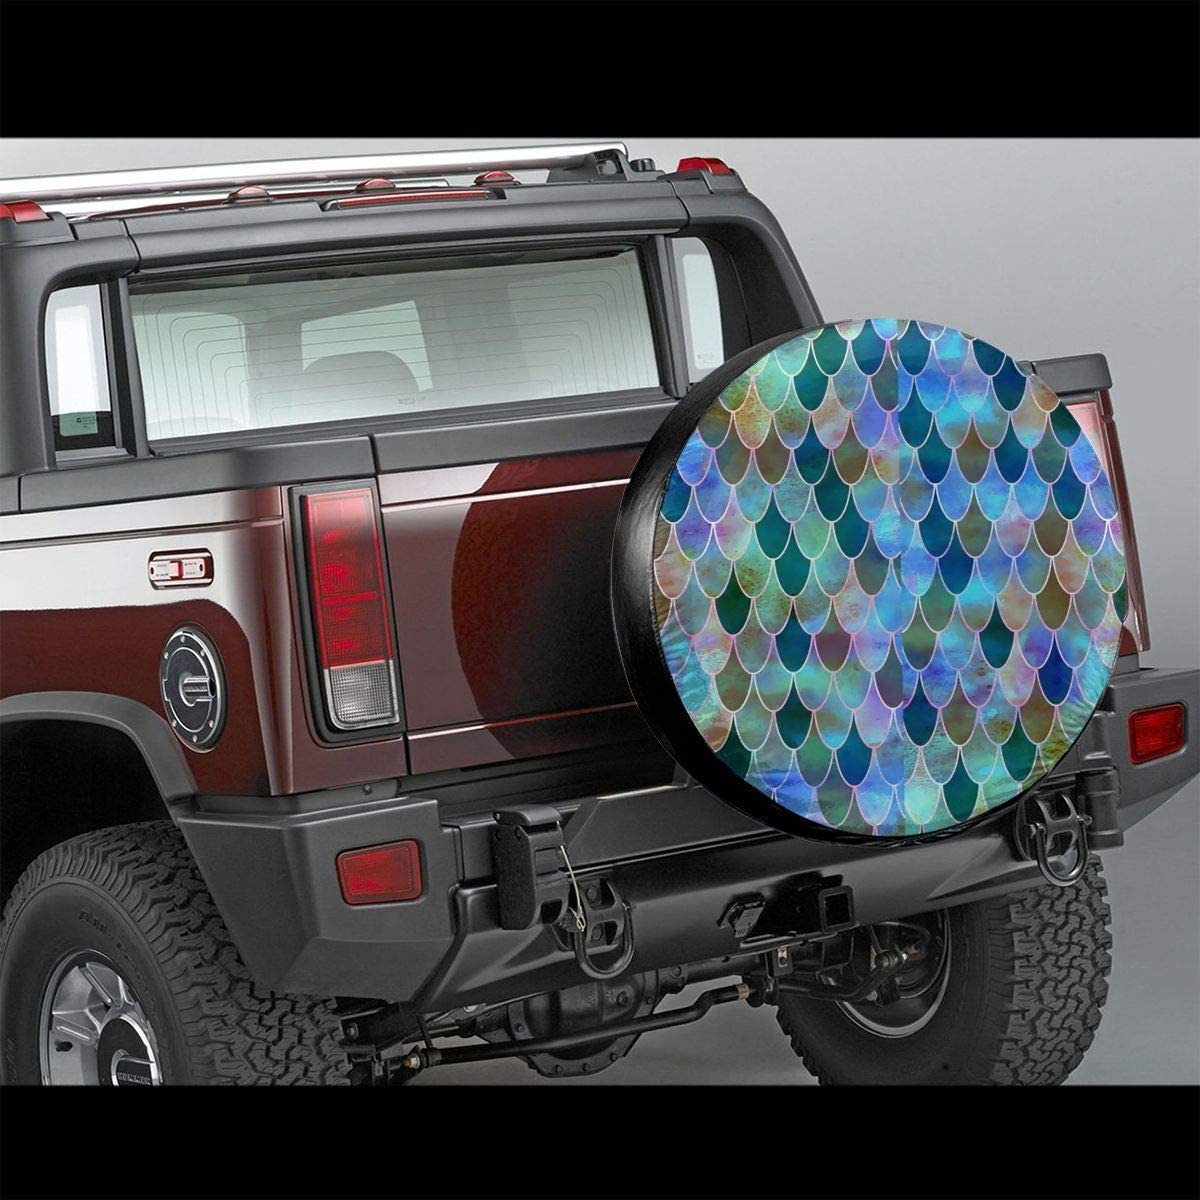 Shiny Mermaid Scales Potable Polyester Universal Spare Wheel Tire Cover Wheel Covers for Jeep Trailer RV SUV Truck Camper Travel Trailer Accessories Spare Wheel Cover Belleeer Spare wheel cover